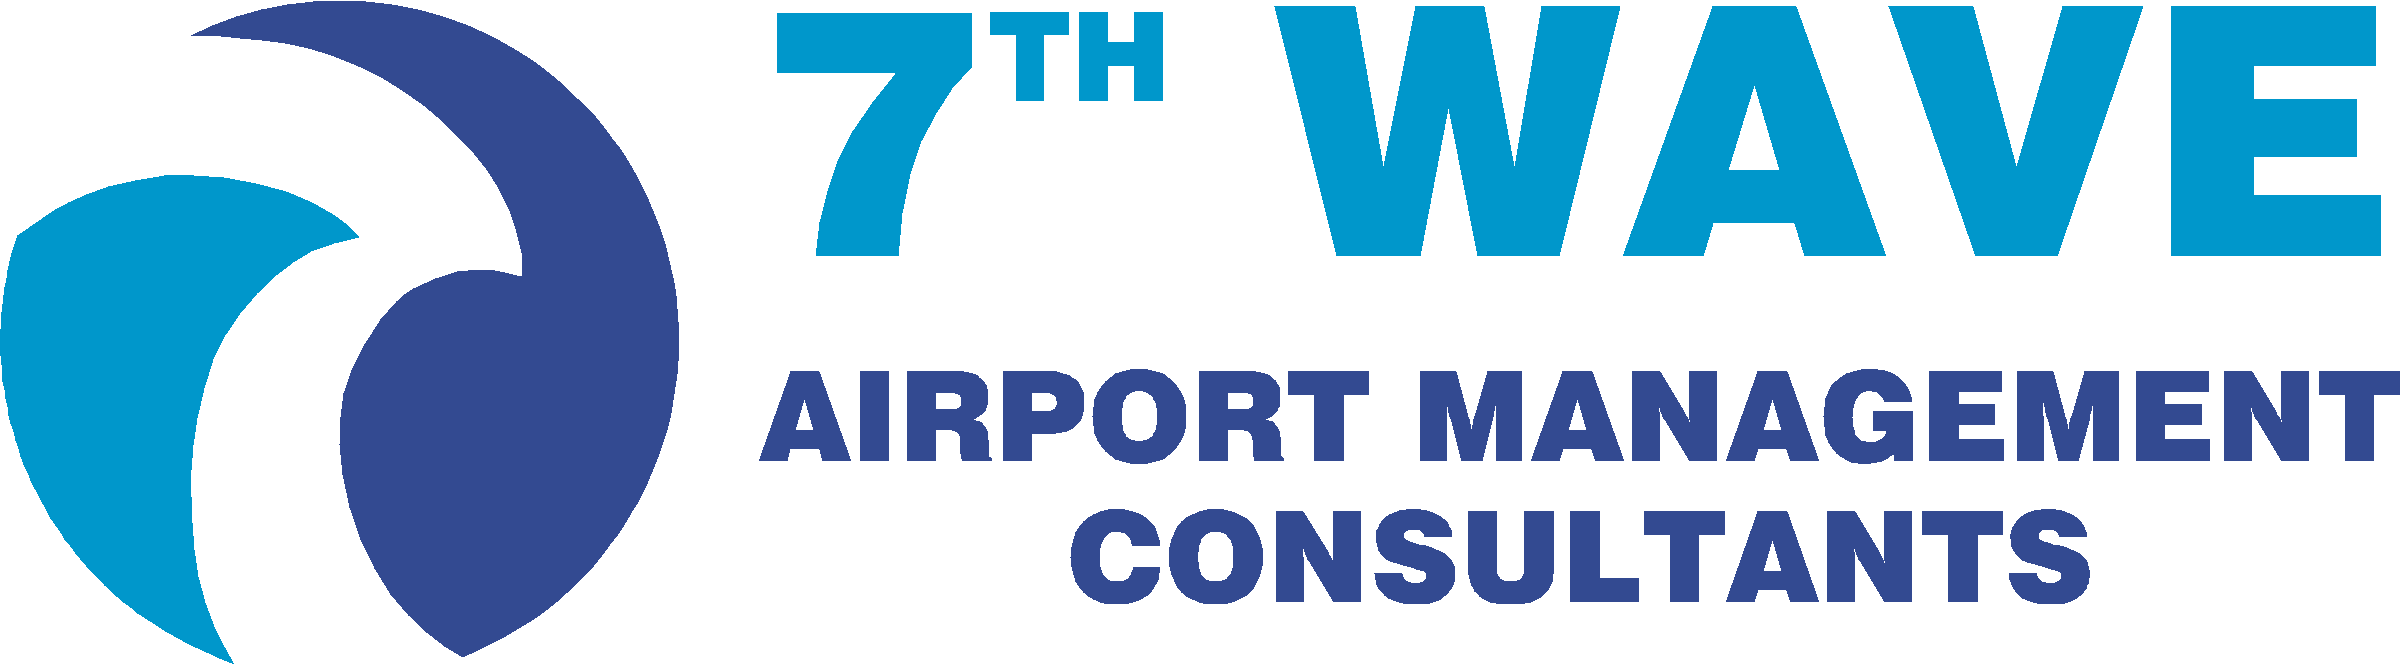 7th Wave Airports Logo